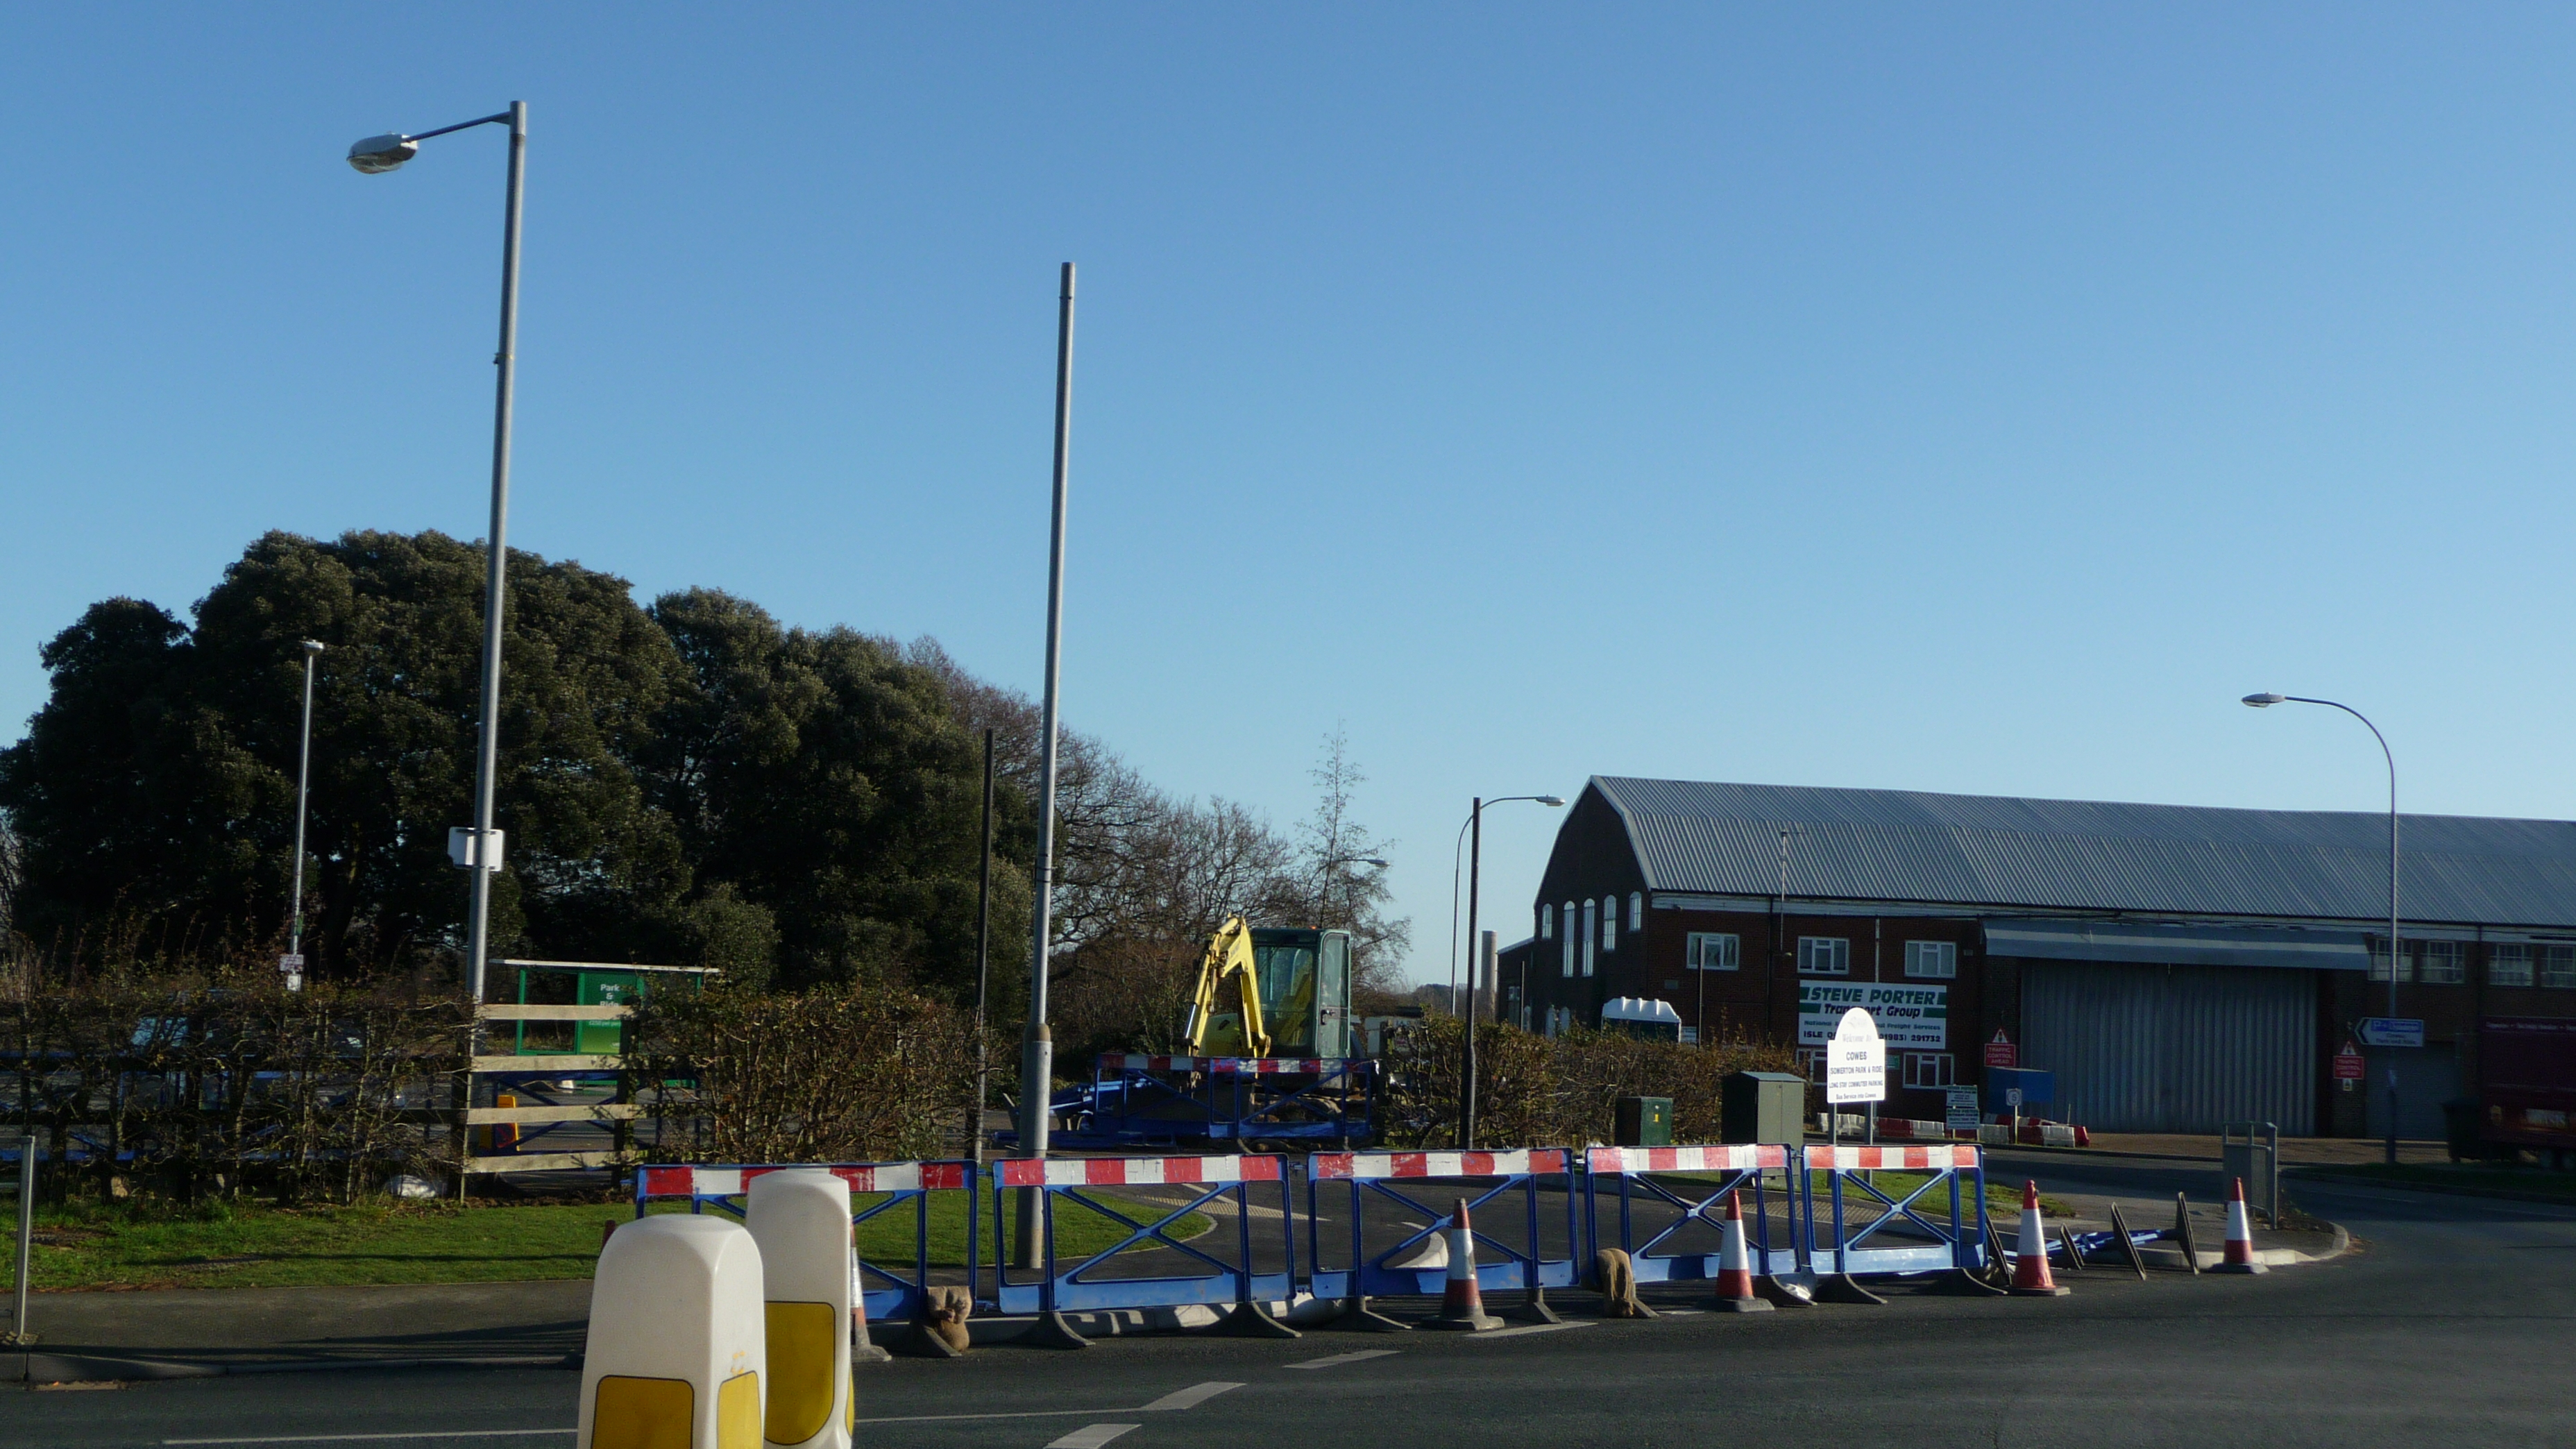 Cowes Somerton park and ride remodeling works 7.JPG